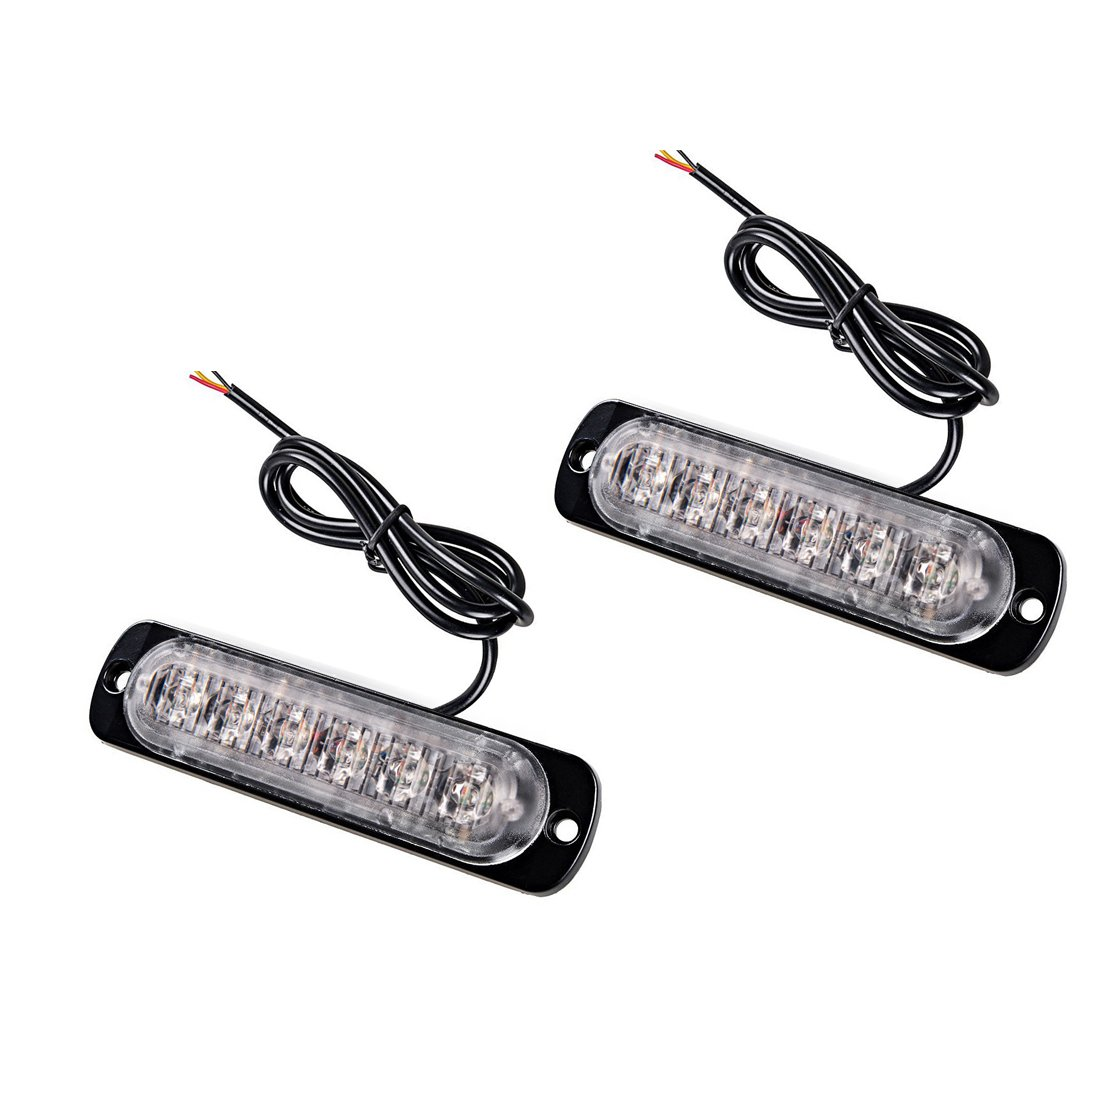 Penfly 2pcs 8w 6LEDs Super Slim Car Strobe Warning Flash Light Emergency Security Lamp Beacon Hazard Mark Side Exterior Signal Vehicle Truck Bus Boat SUV Amber/Yellow Light Color DC 12-24v